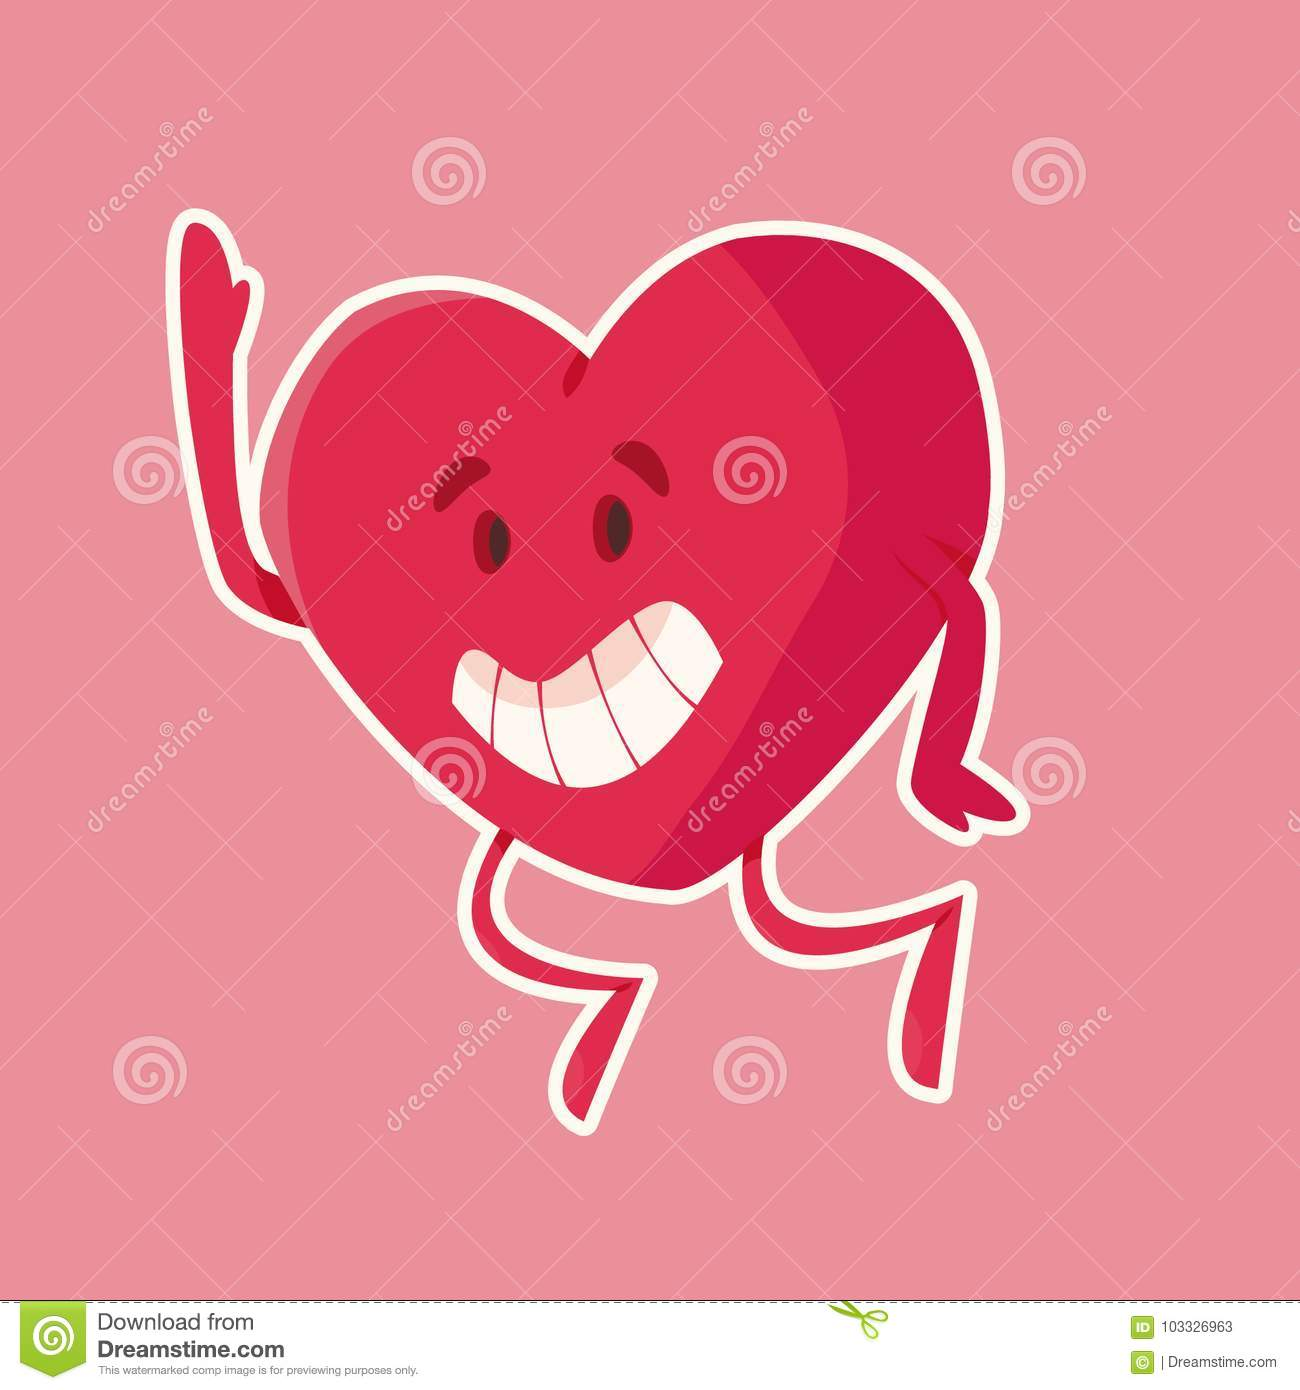 Funny Smiling Heart Character Illustrated Stock Vector